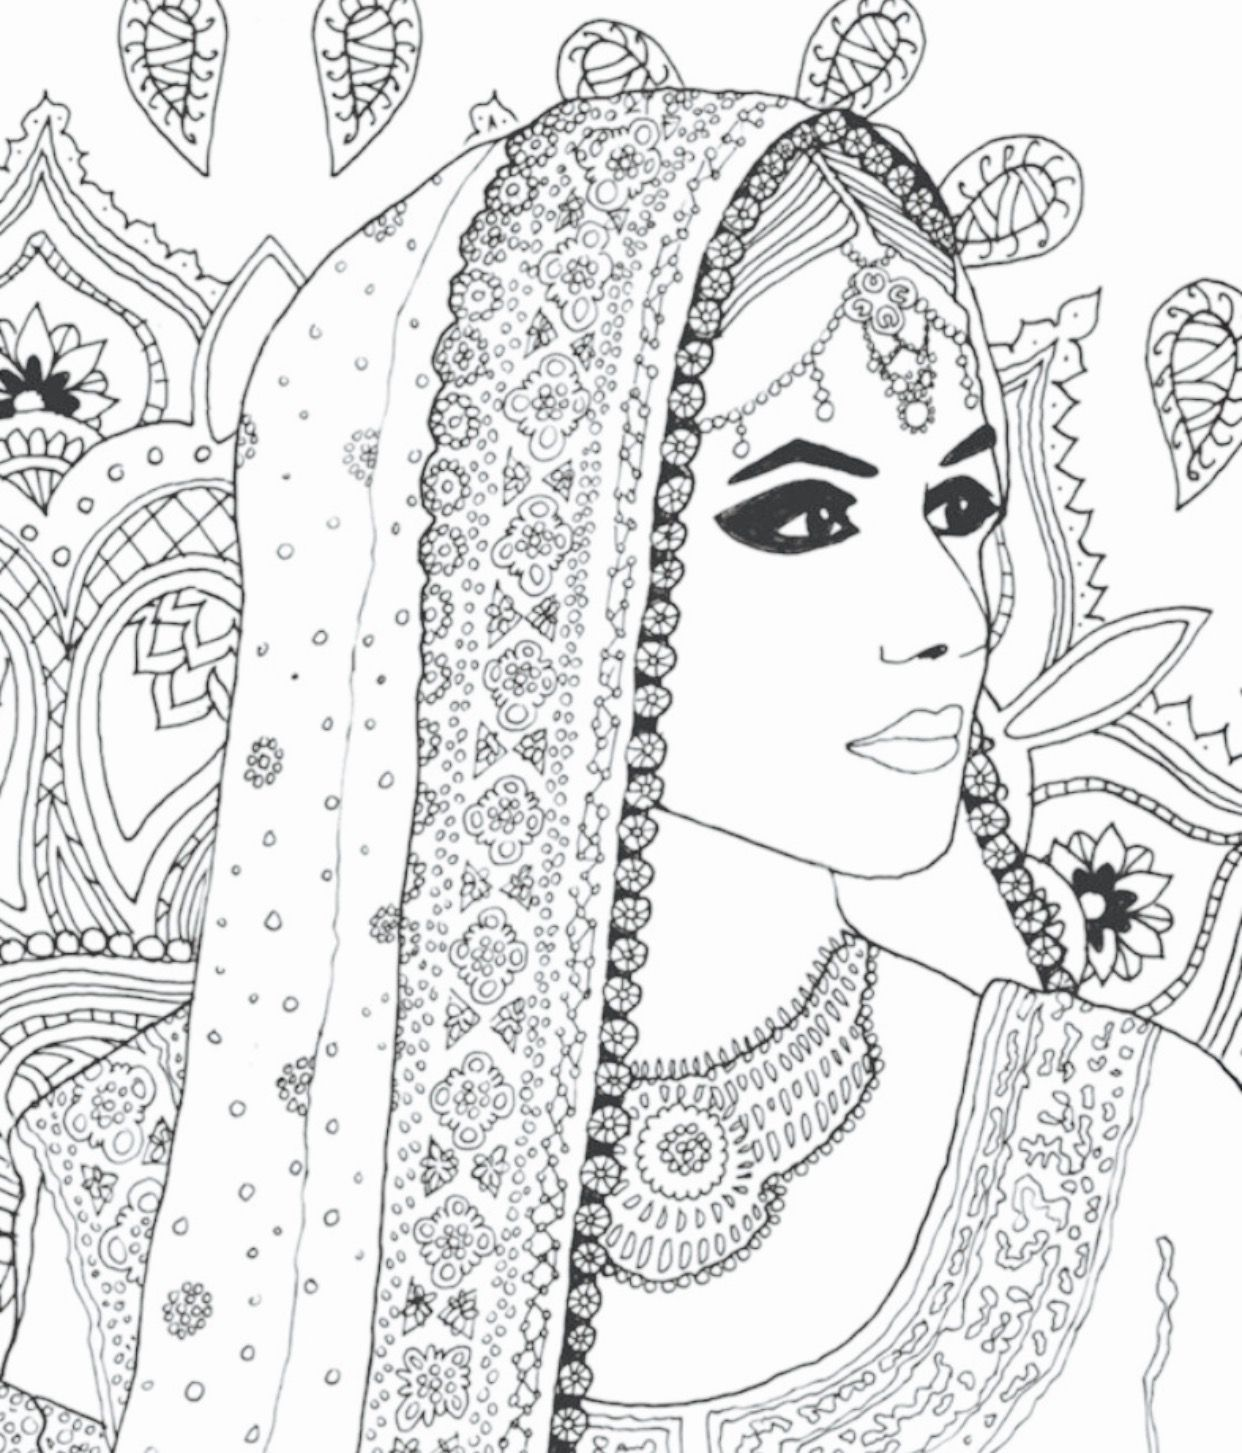 Indian Bride Coloring Page Beautiful Women Coloring Pages Coloring Pages Learn Art Mandala Drawing